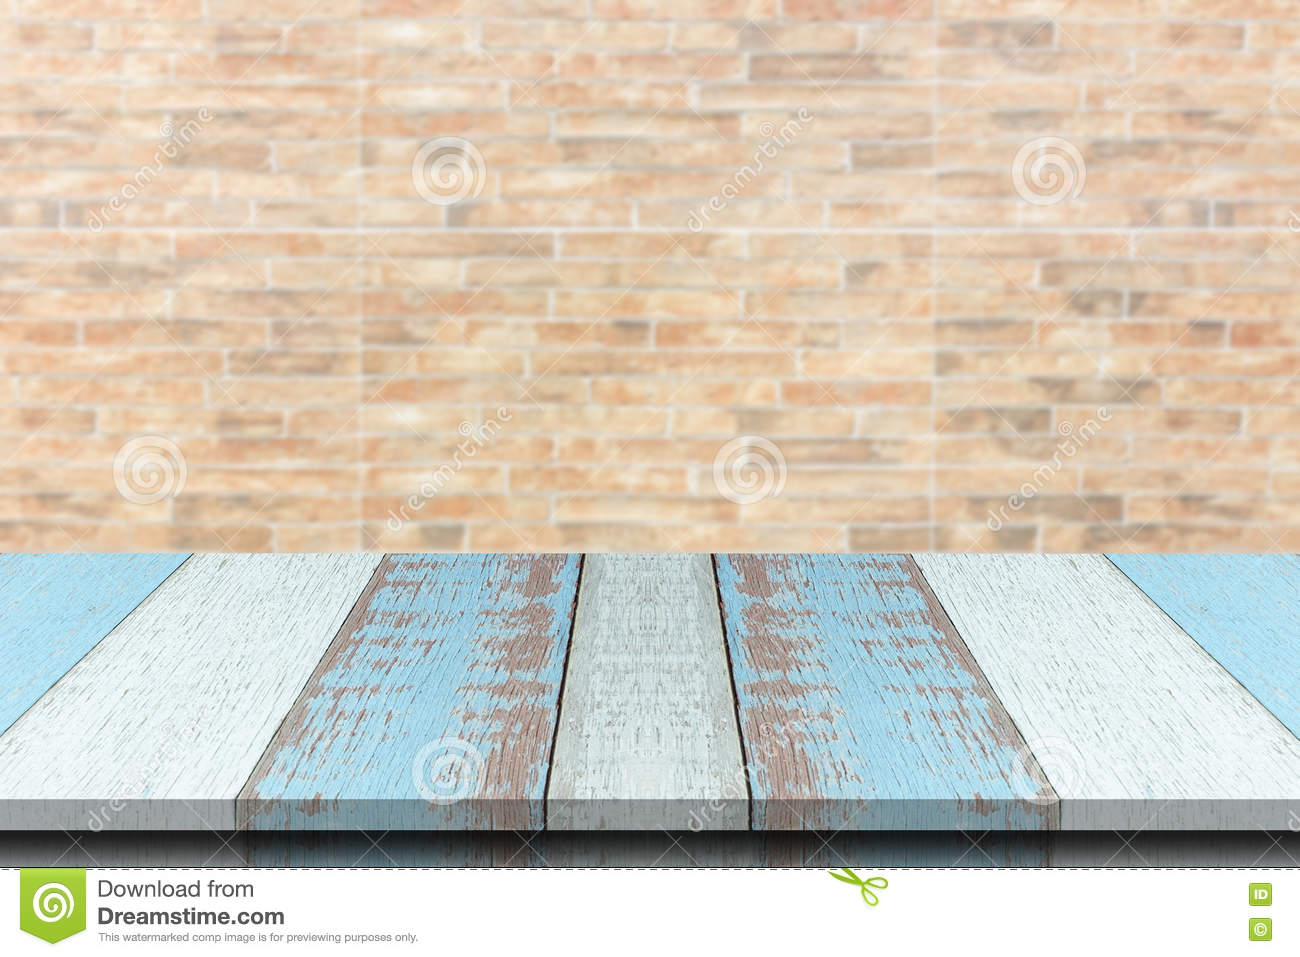 Plank wood or table top with blurred synthetic wall brick background.